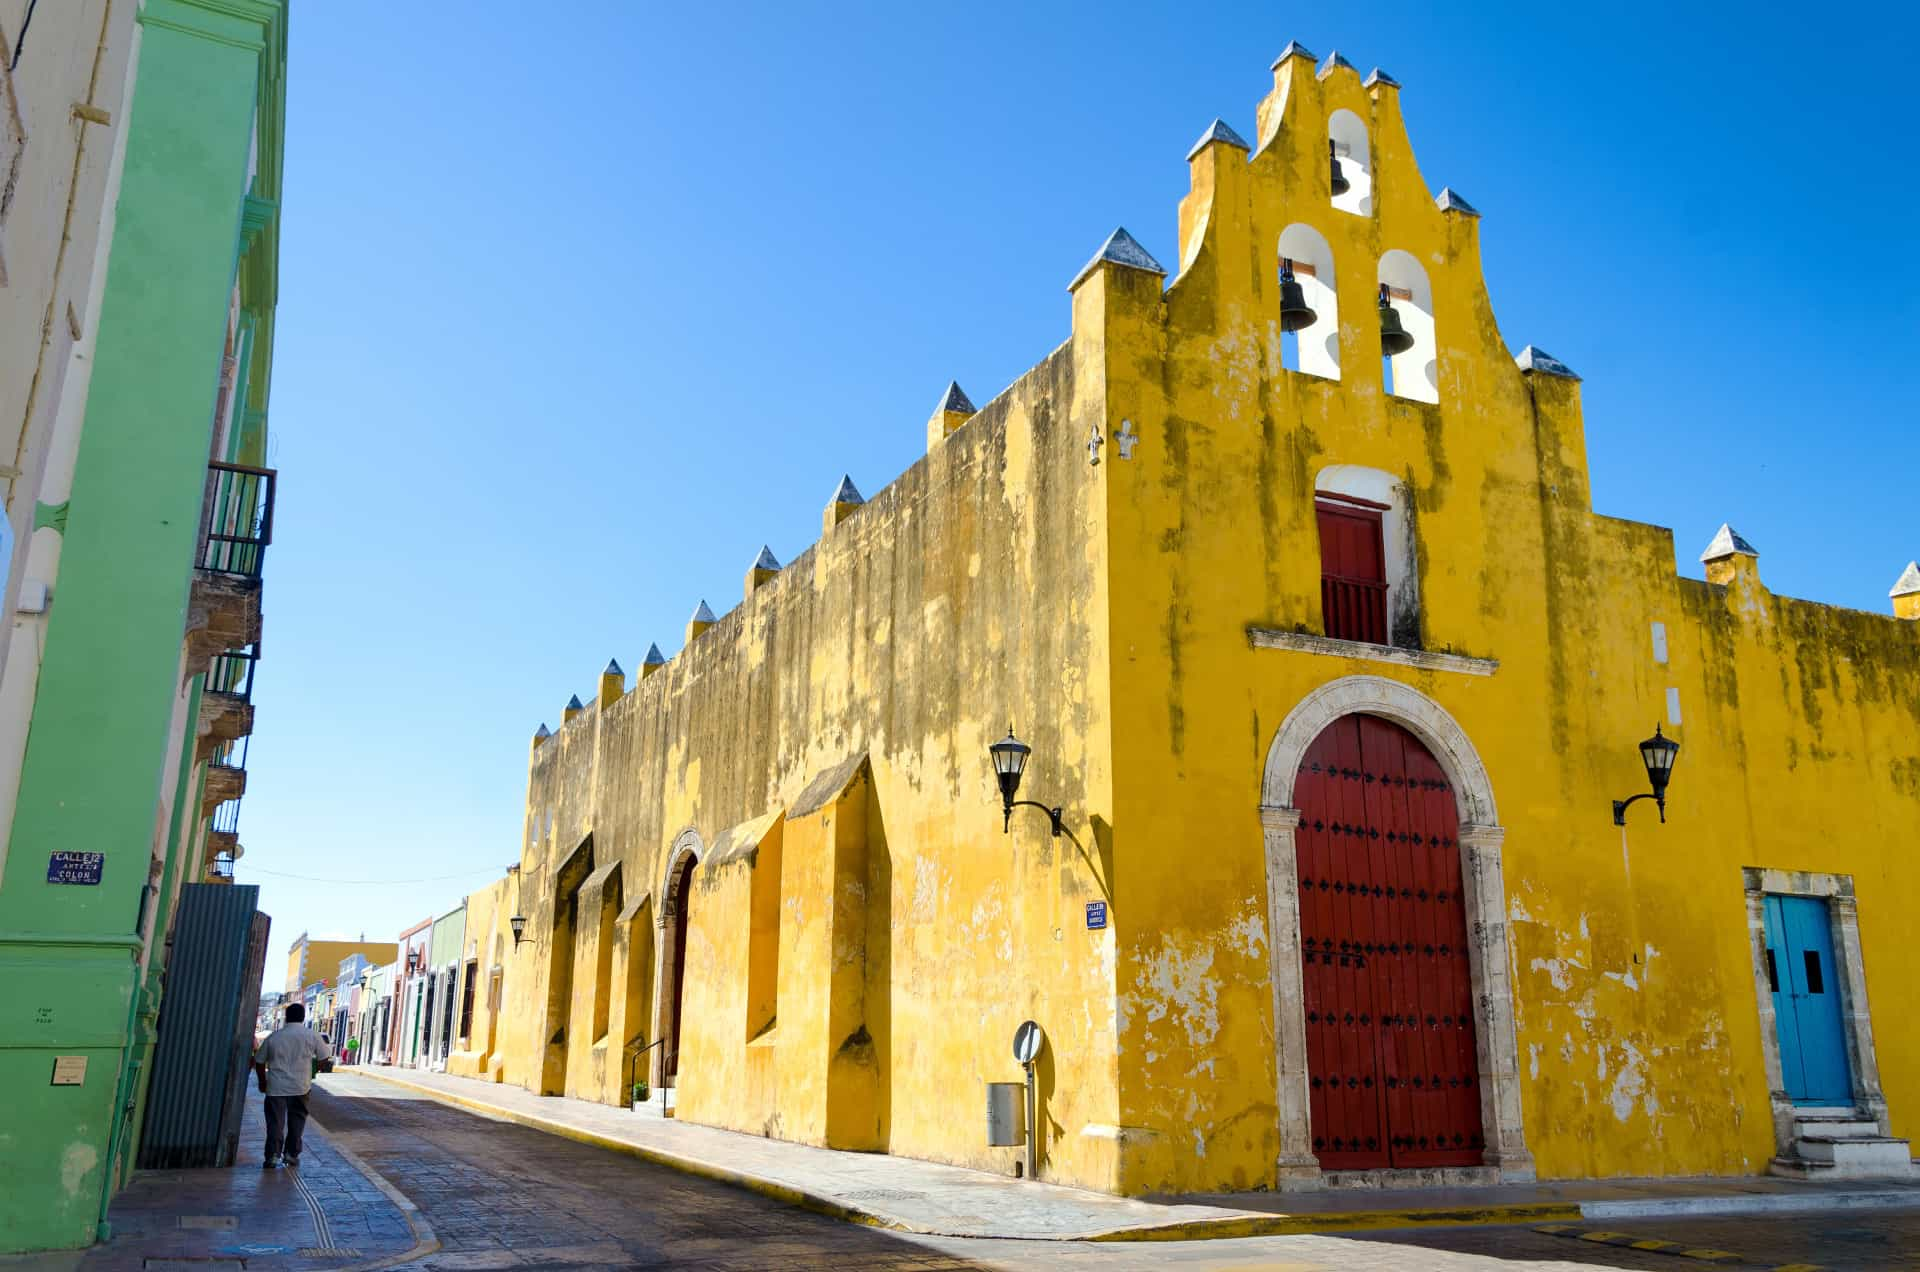 Top 15 family destinations to visit in Mexico